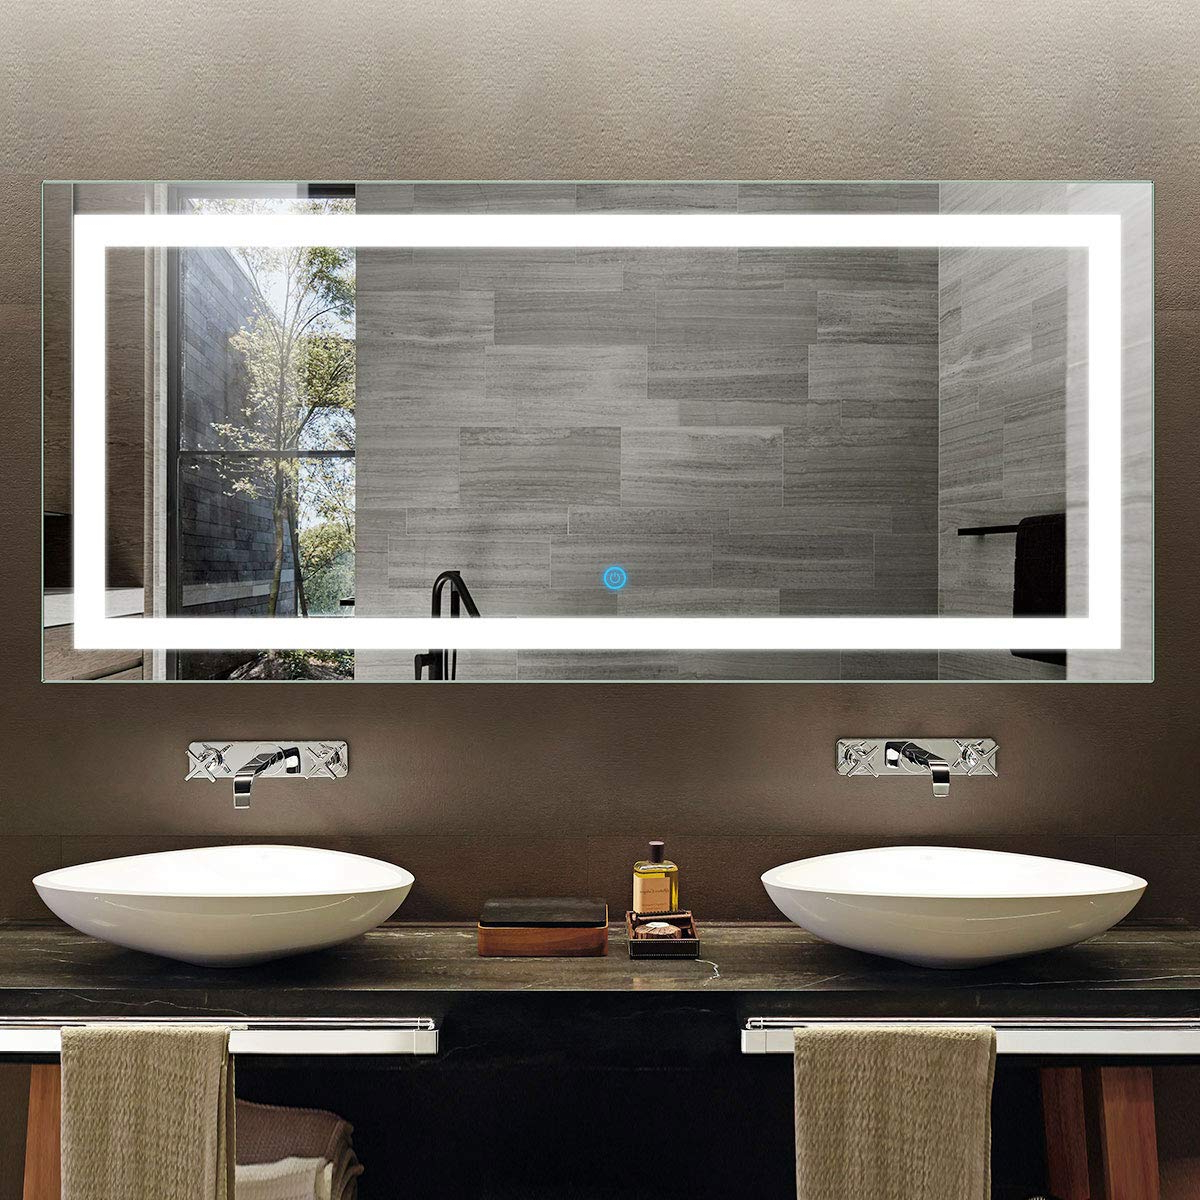 Most Recent Large Modern Lighted Wall Mounted Bathroom Vanity Mirror, Led Frameless  Backlit Illuminated Wall Mirror, Rectangle Horizontally White Mirrors For Regarding Illuminated Wall Mirrors For Bathroom (View 13 of 20)